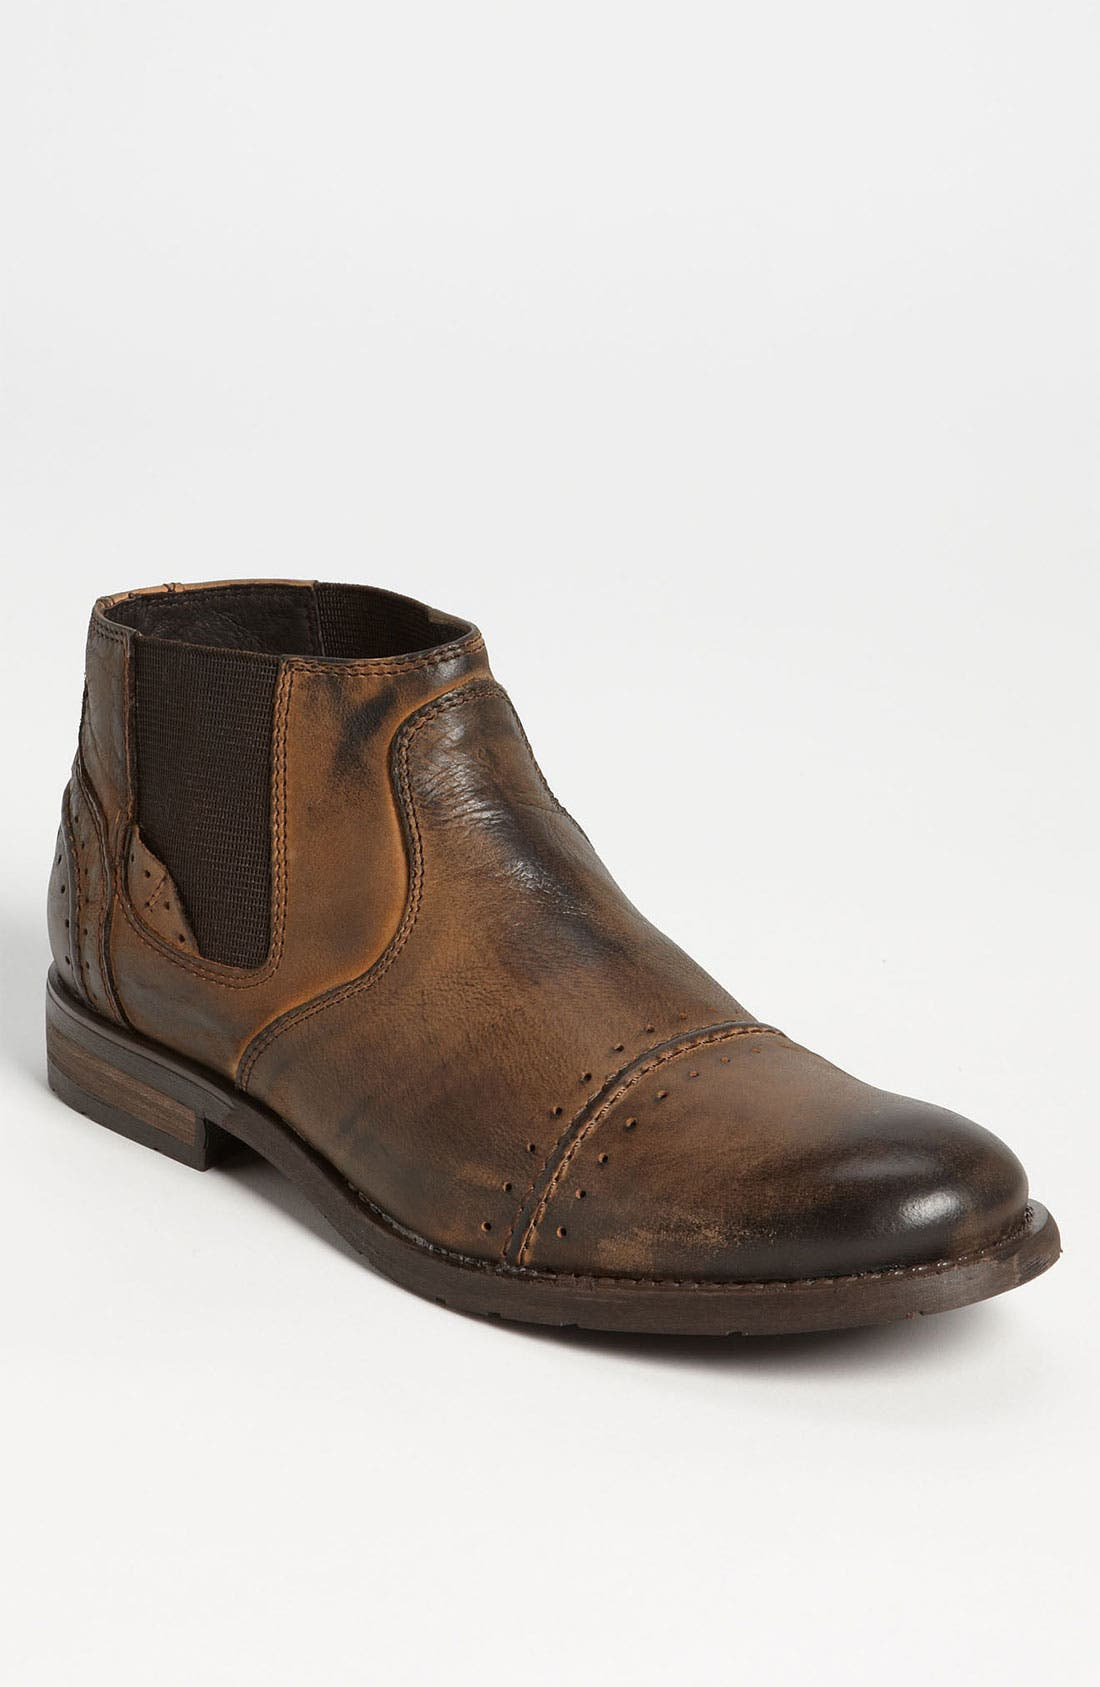 Alternate Image 1 Selected - Bacco Bucci 'Borelli' Chelsea Boot (Men)